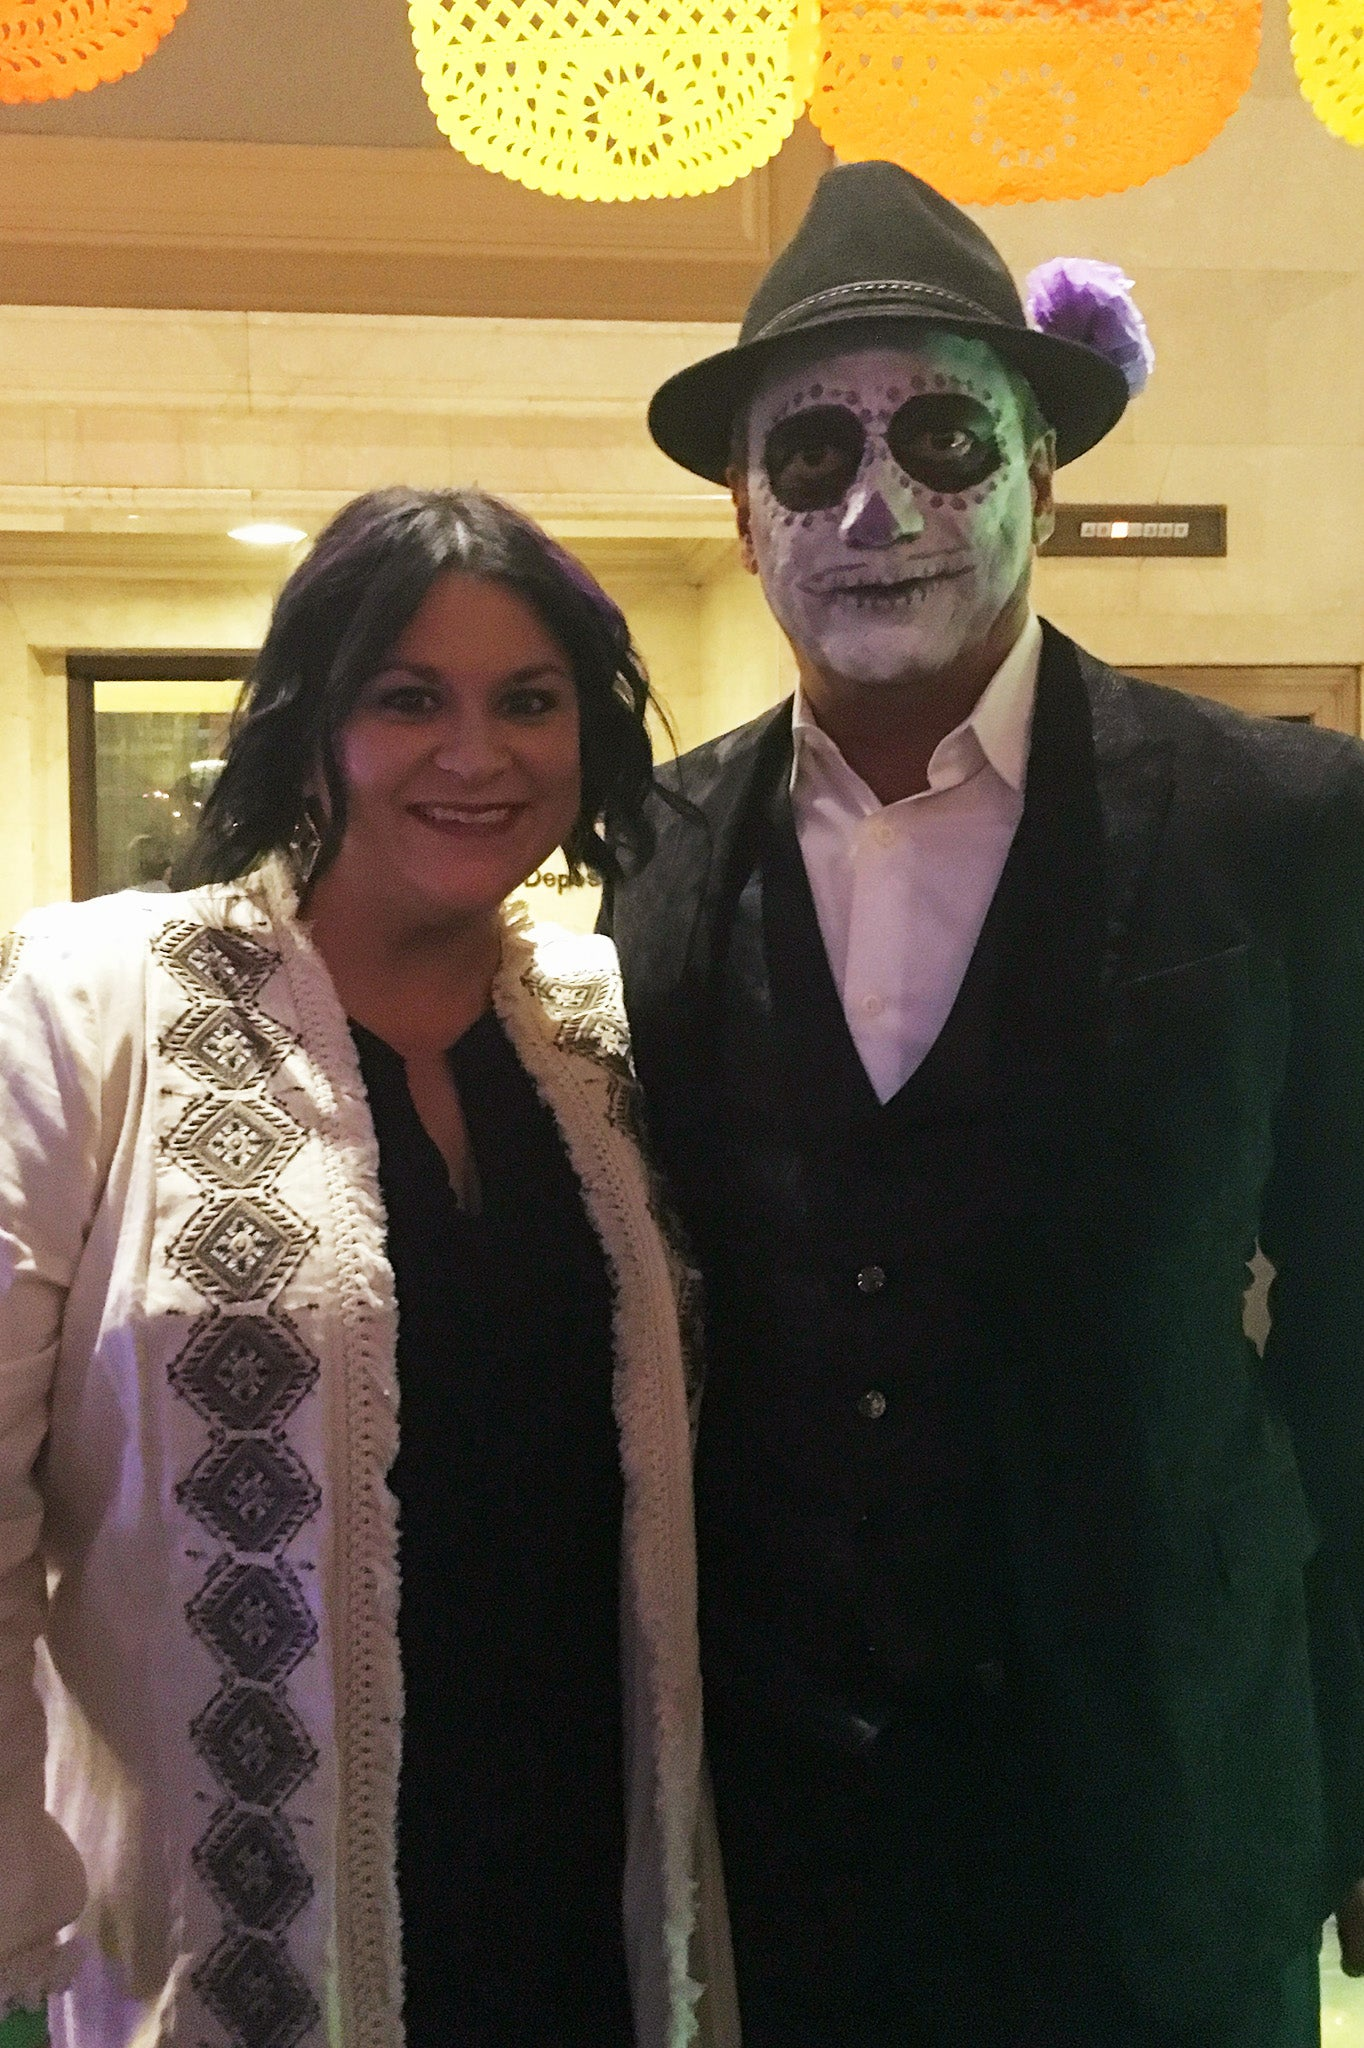 Latino Memphis Day of the dead fiesta in Memphis TN Mucho celebration of 1 year